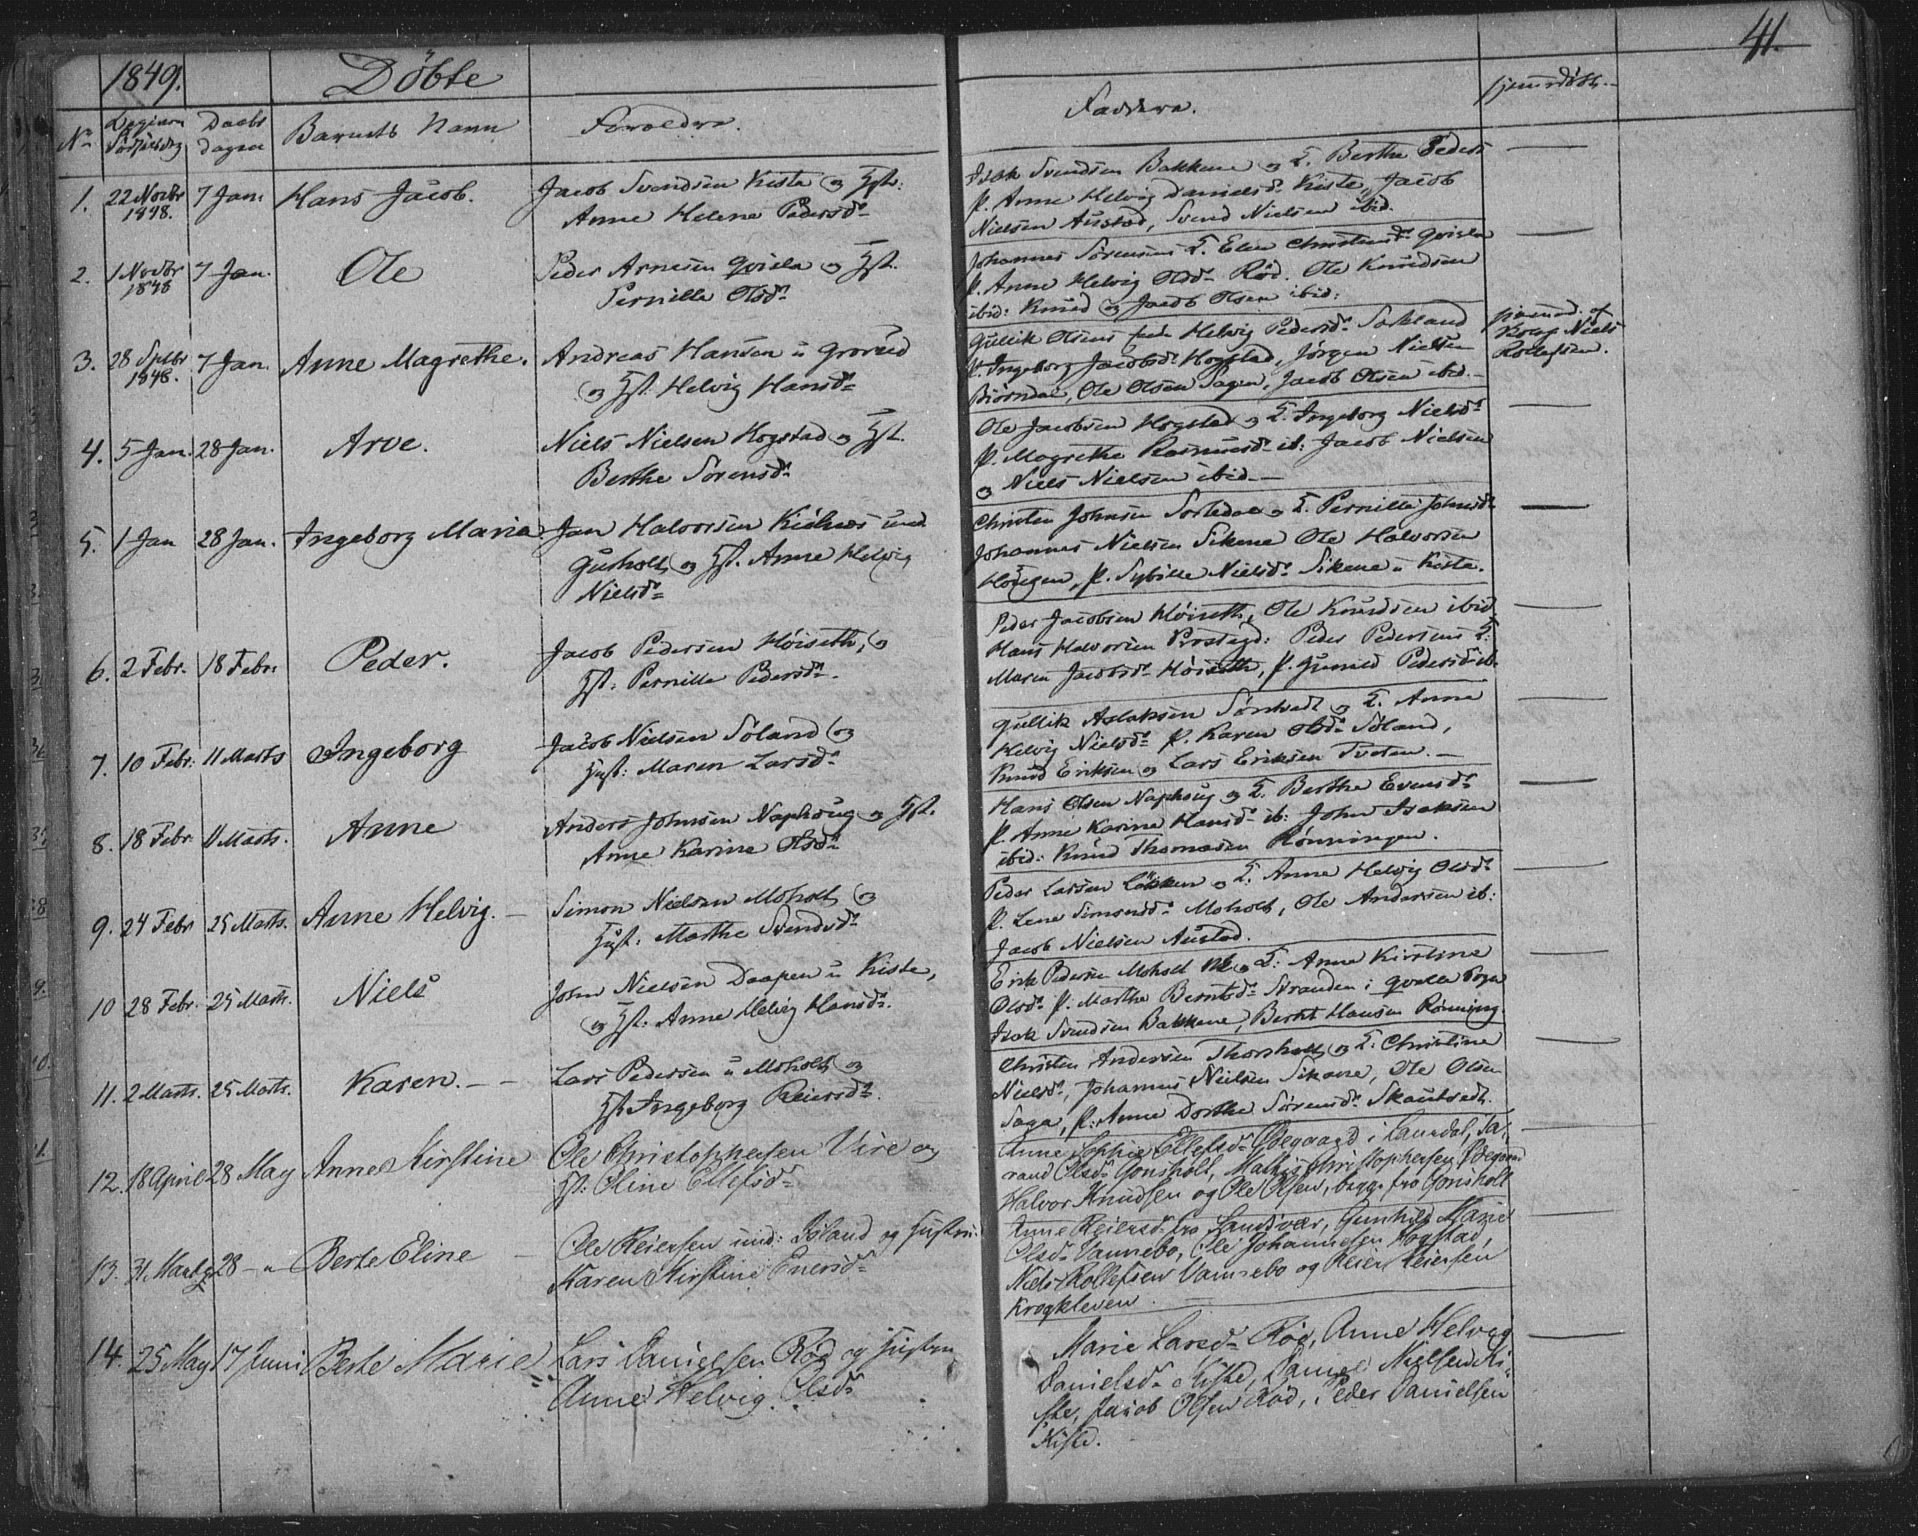 SAKO, Siljan kirkebøker, F/Fa/L0001: Parish register (official) no. 1, 1831-1870, p. 41